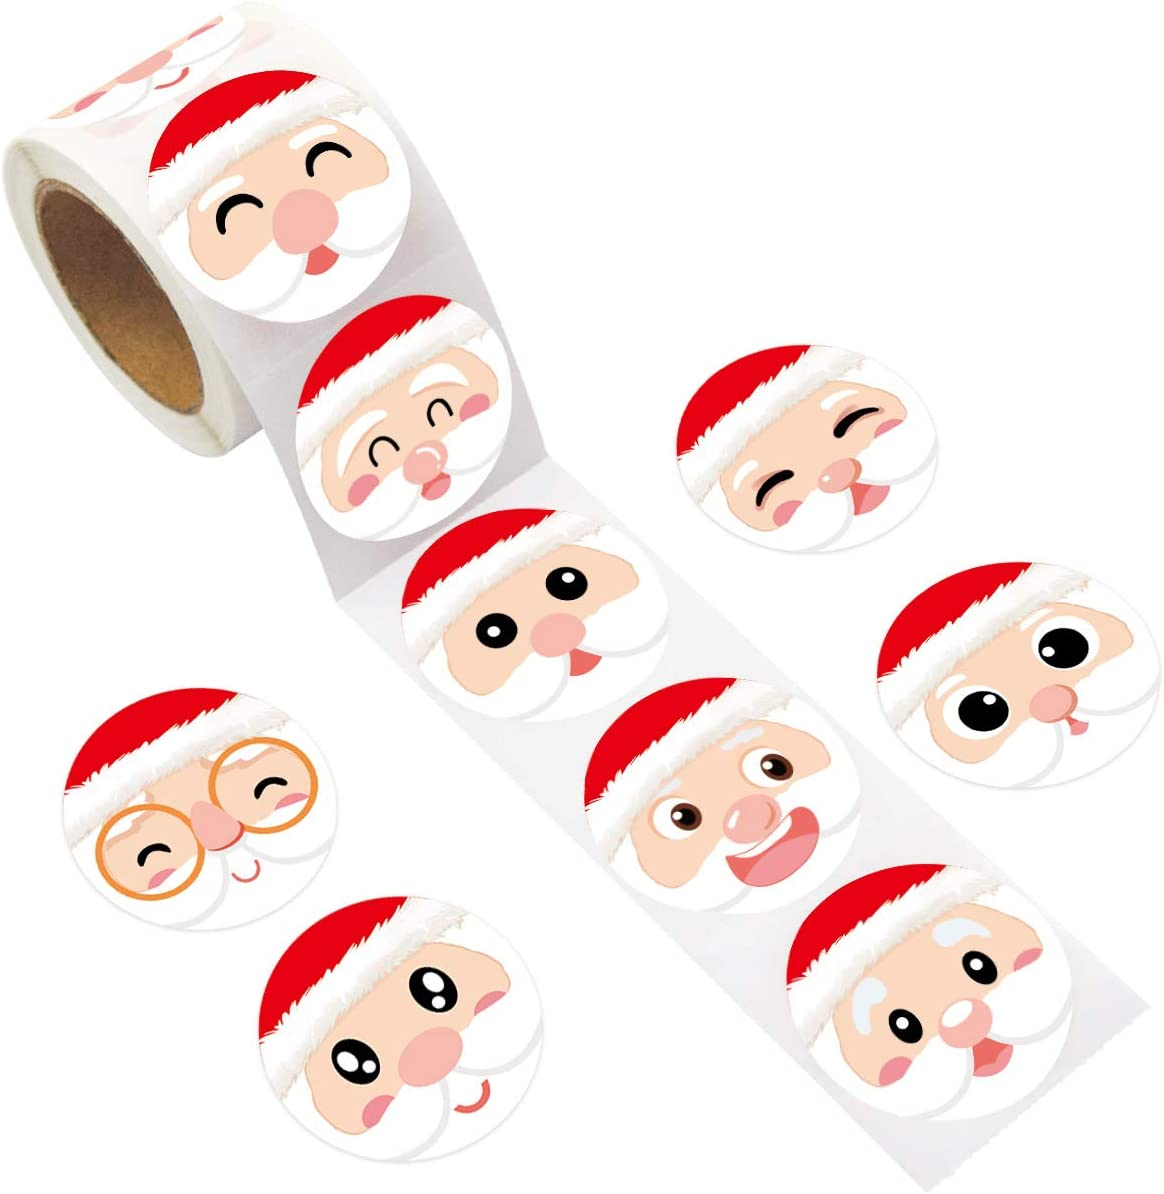 Santa Face Sticker Christmas Stickers for Kids 200Pcs Per Roll